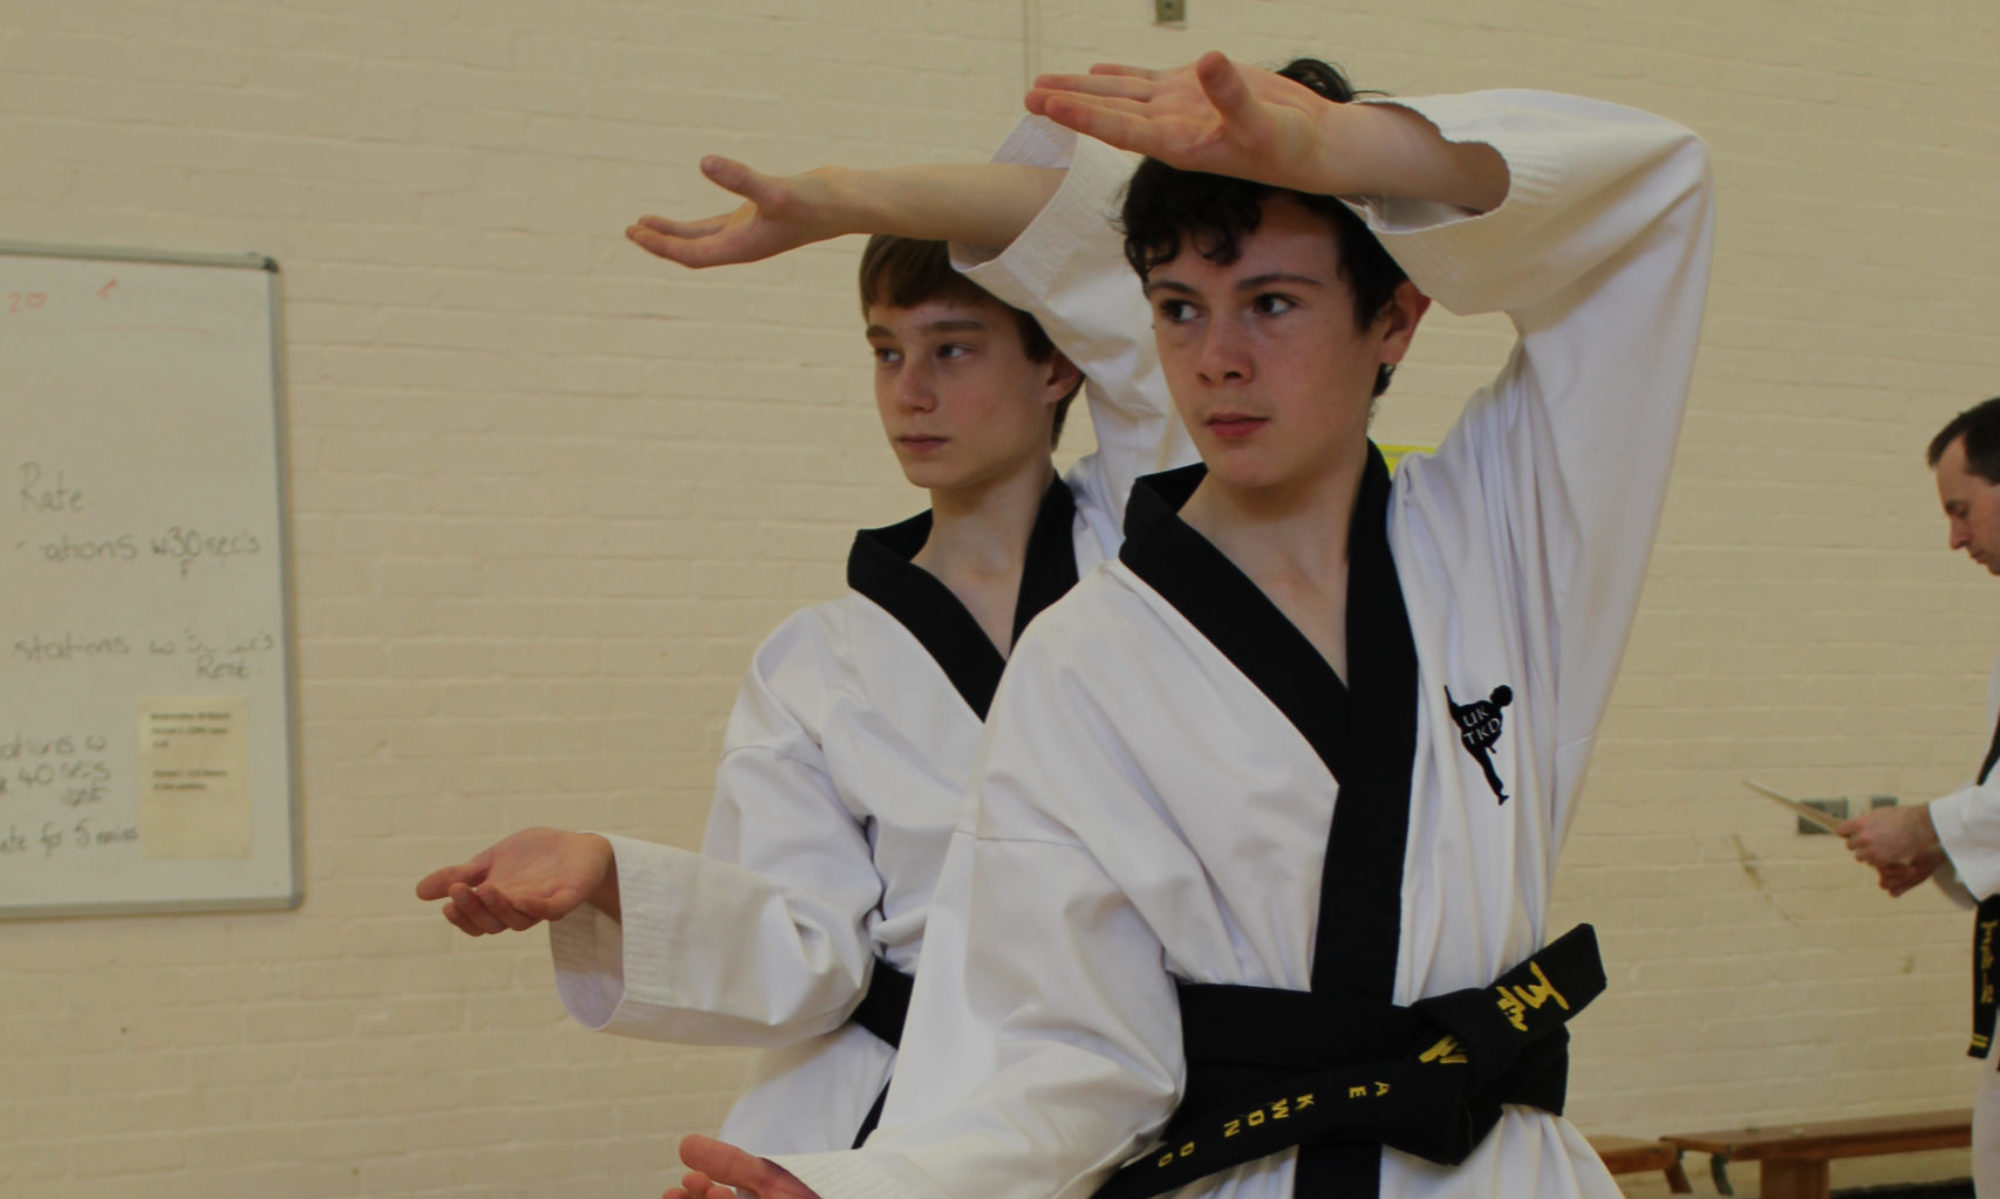 Linslade Taekwon-Do Club